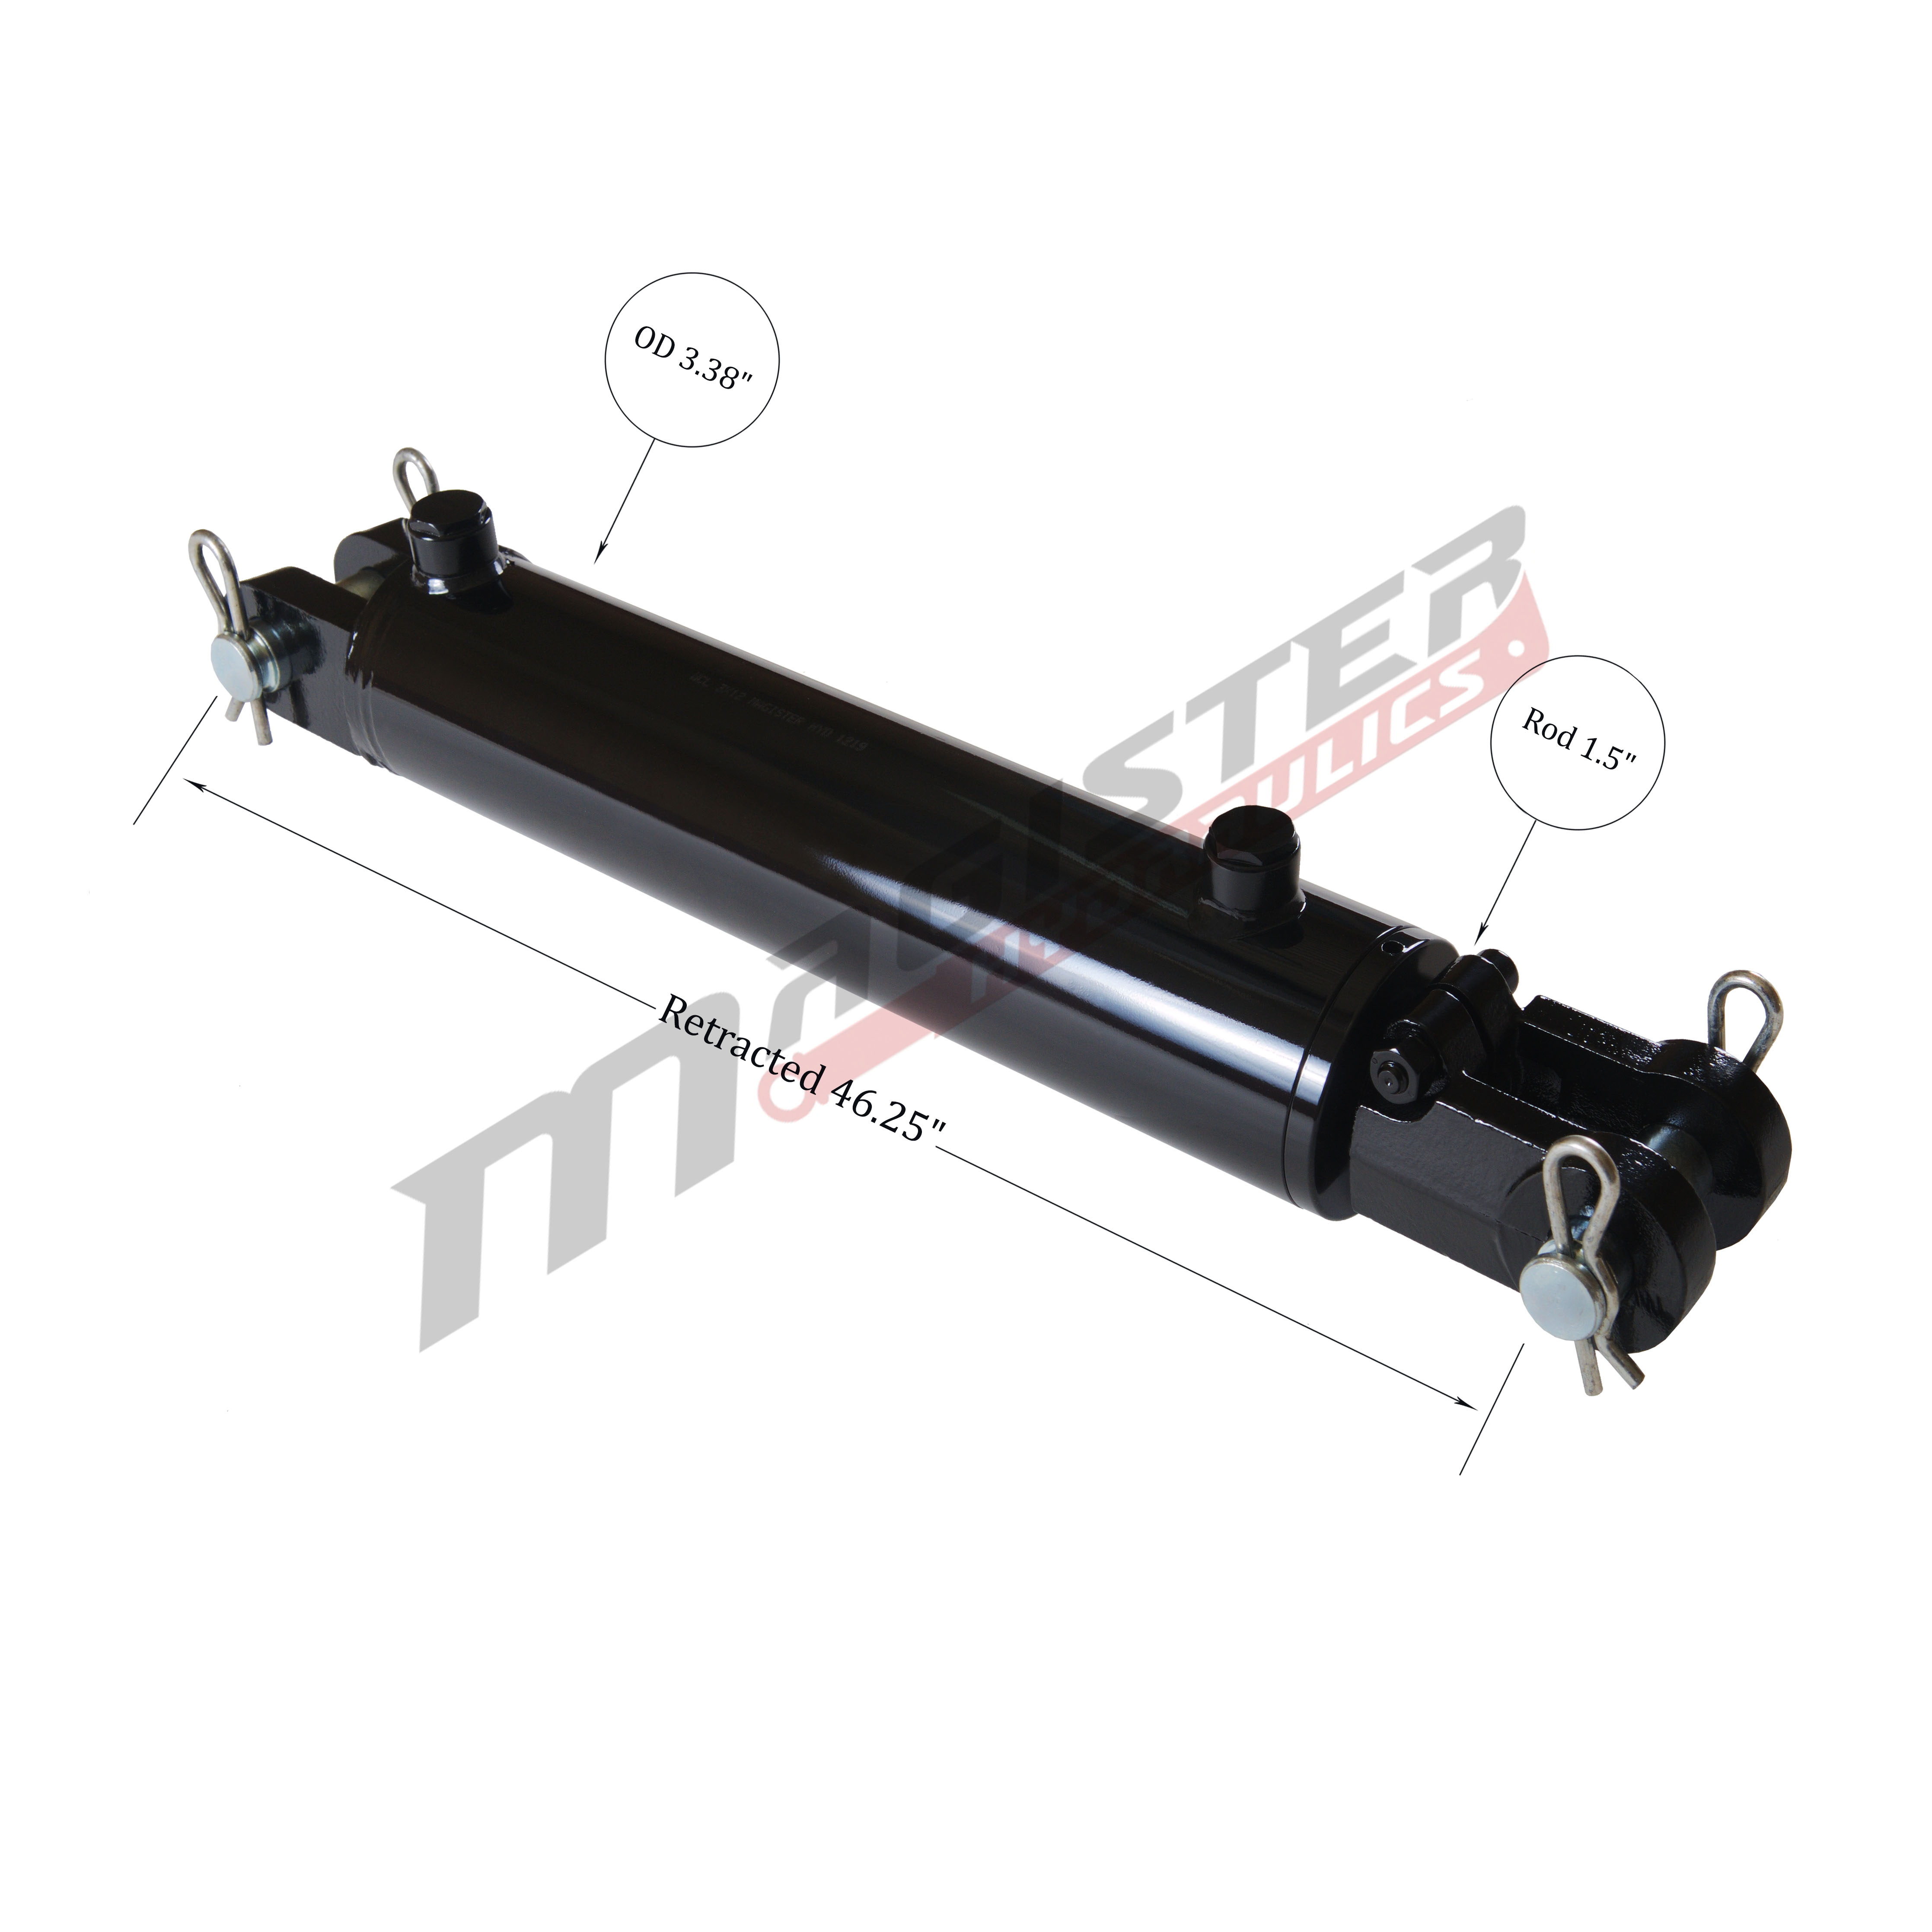 3 bore x 36 stroke hydraulic cylinder, welded clevis double acting cylinder   Magister Hydraulics